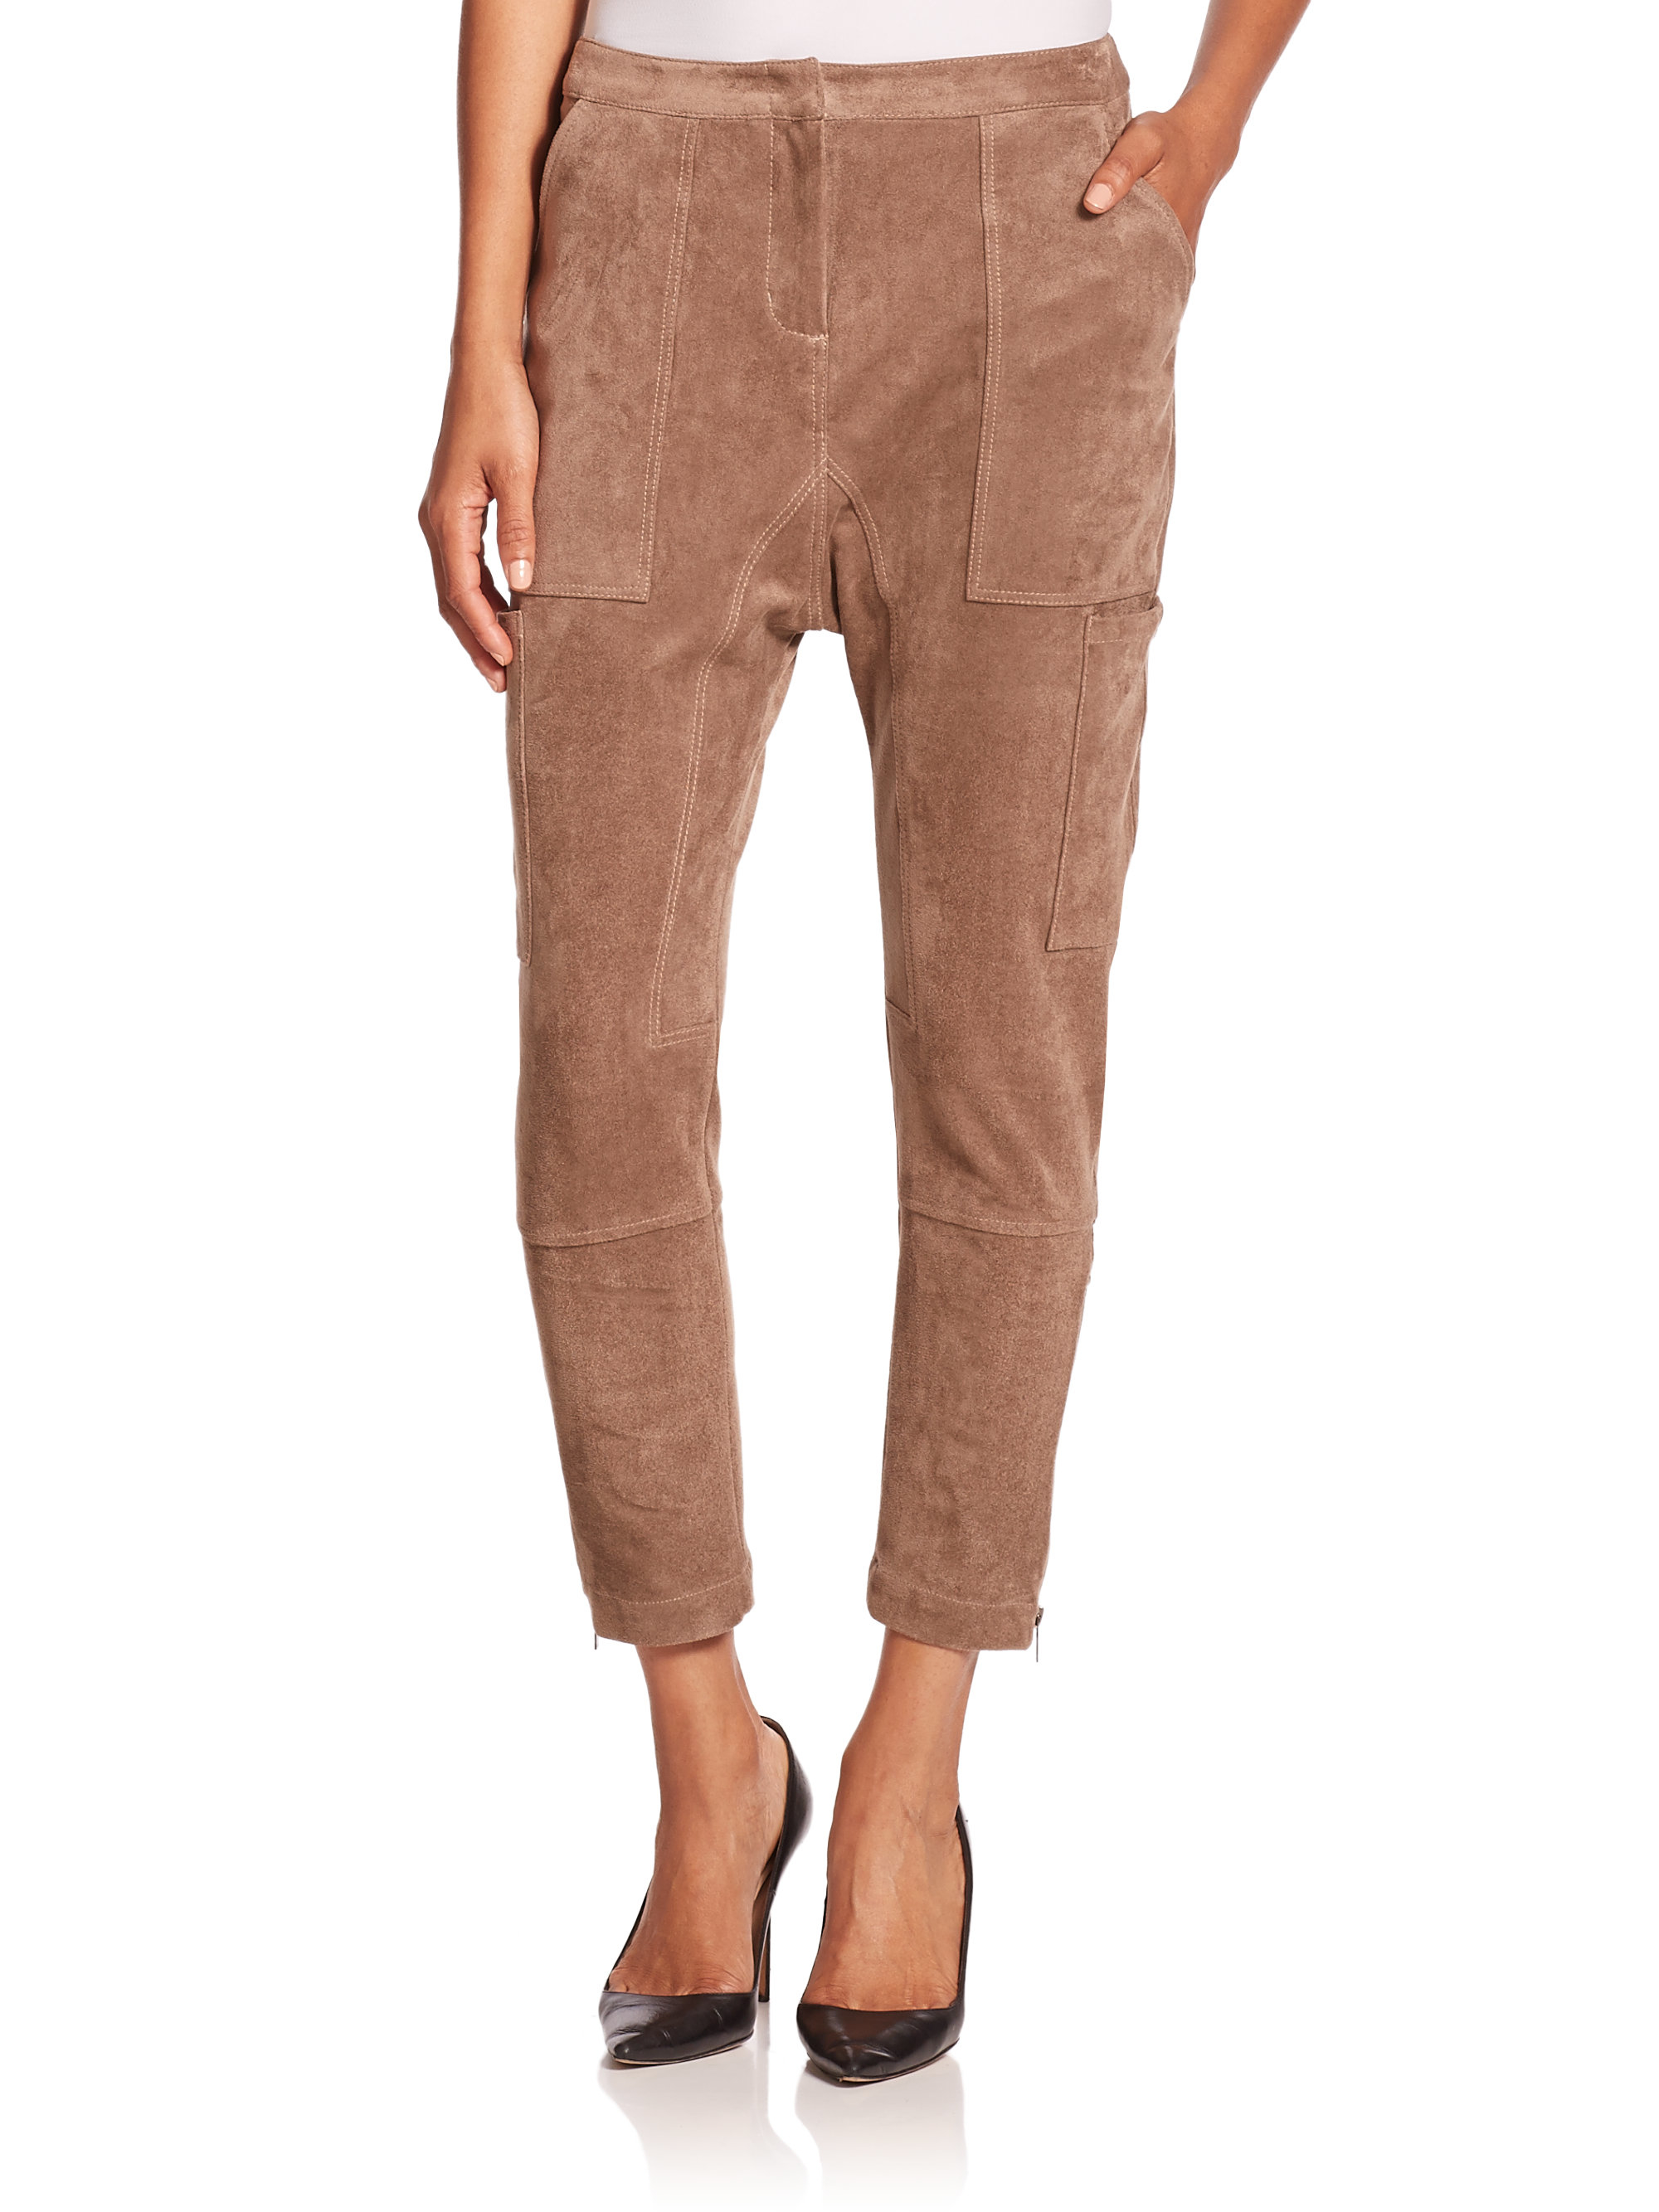 Find great deals on eBay for suede trousers. Shop with confidence.